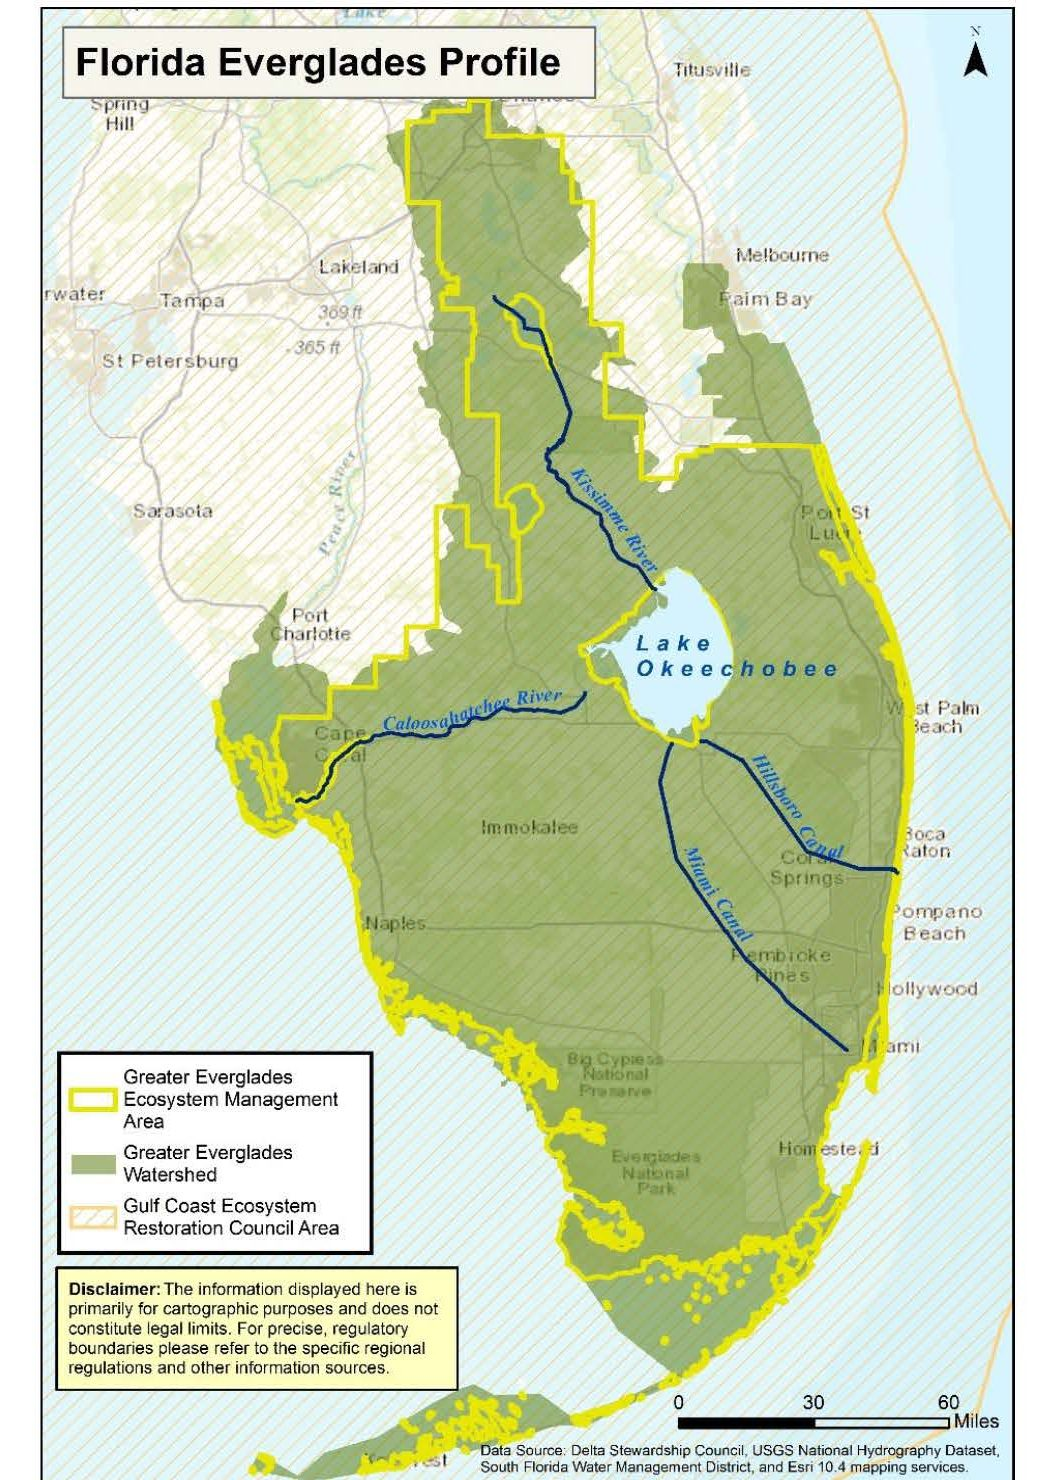 America's Everglades - The largest subtropical wilderness in the United States